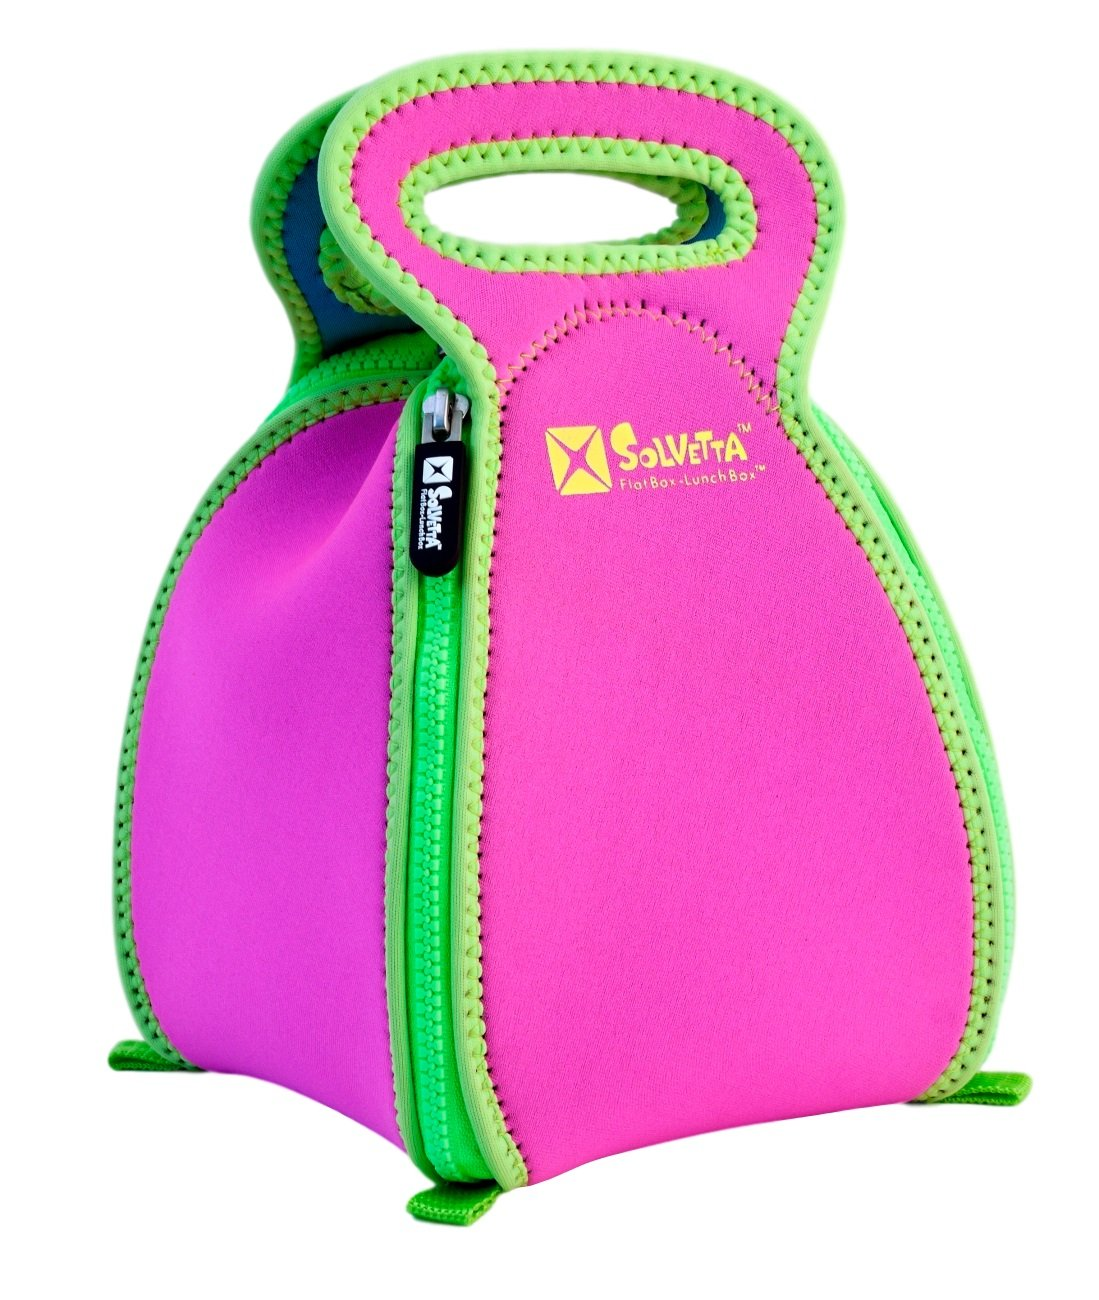 Smart Neoprene Lunch Box that Converts to a Placemat - For Kids School or Office, Machine Washable, Lightweight and Insulated! LARGE Hot Pink/Green